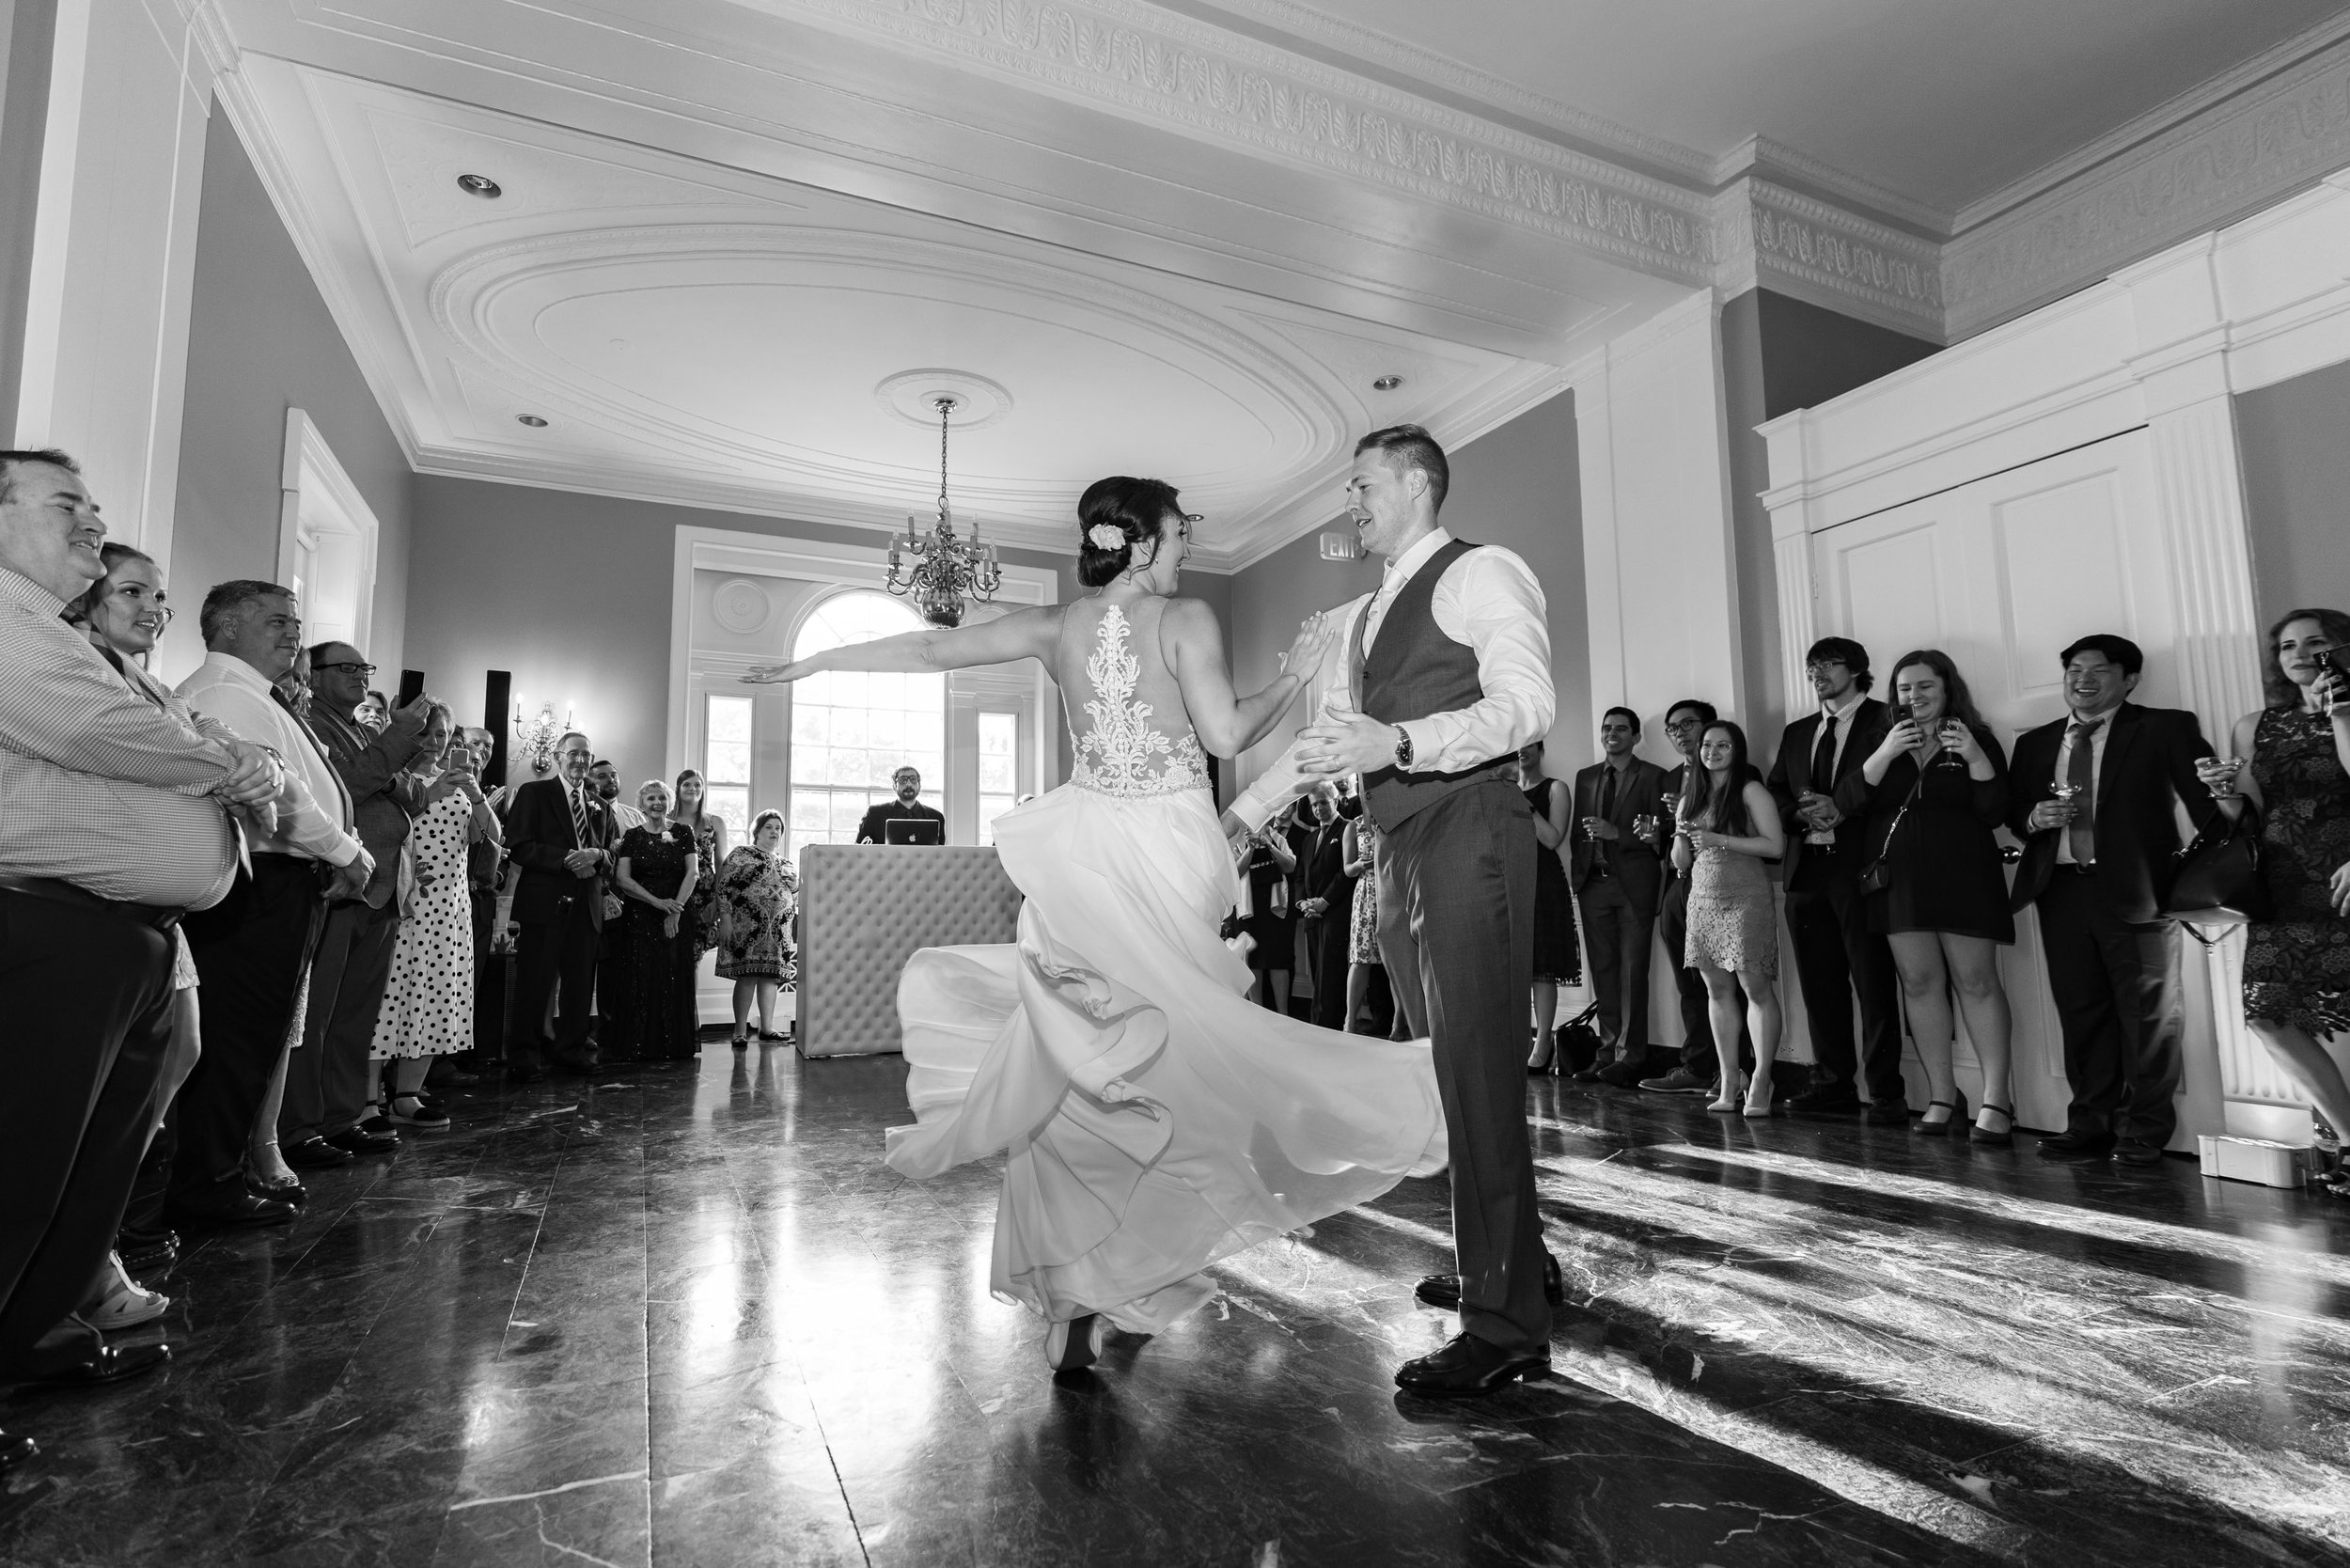 Choreographed first dance bride and groom at Glenview Mansion ballroom